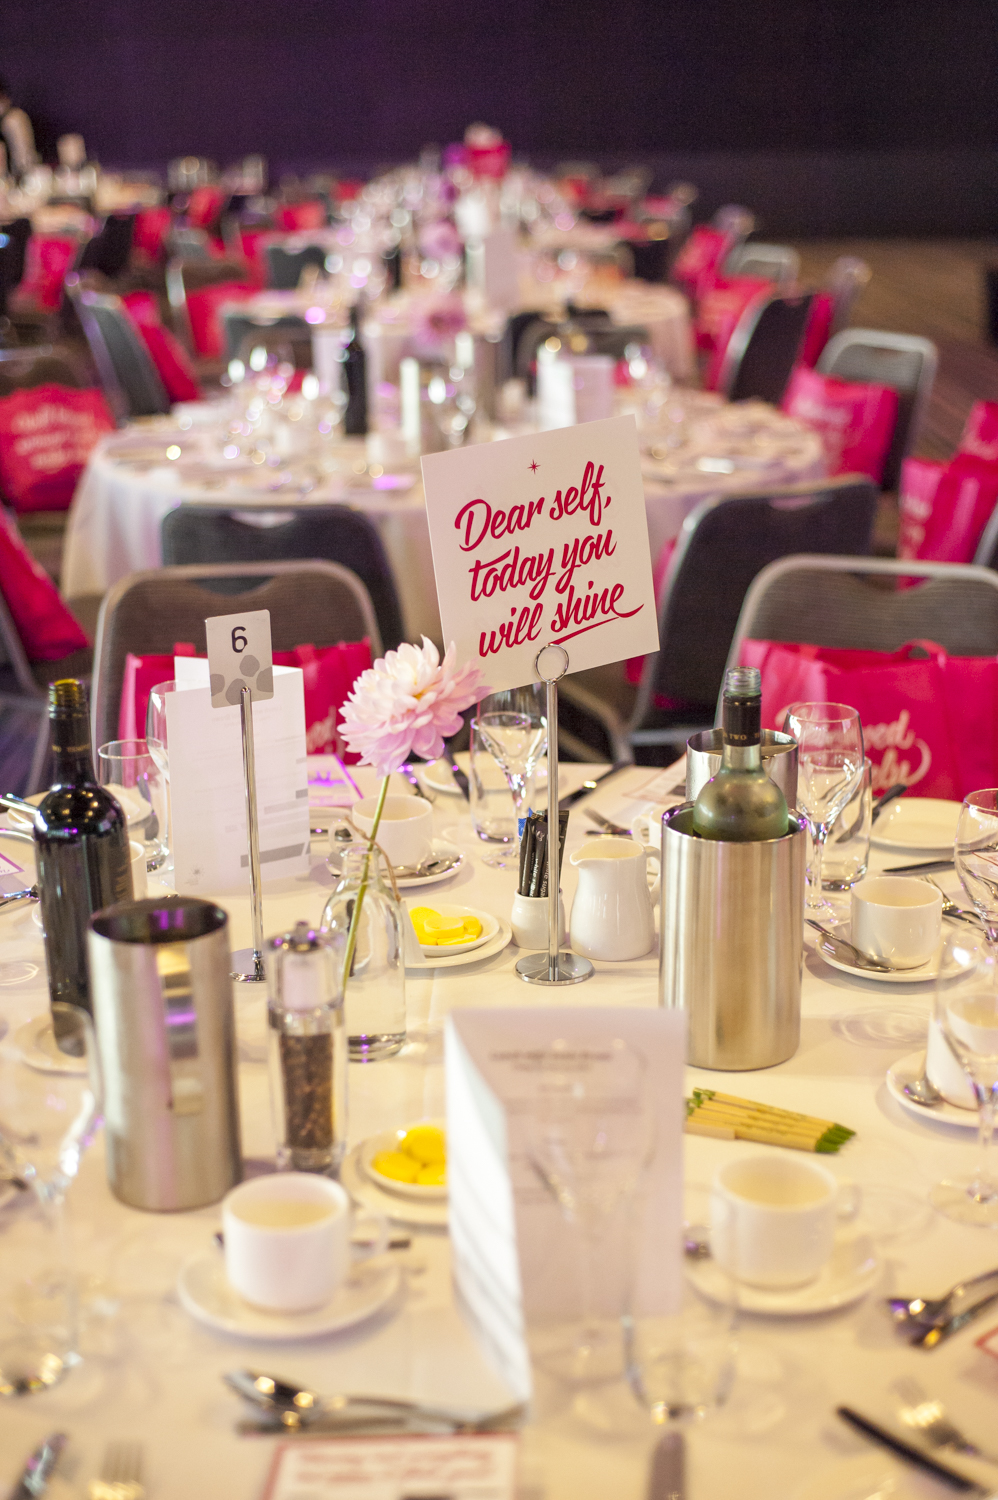 BusinessChicks130215-0314.jpg